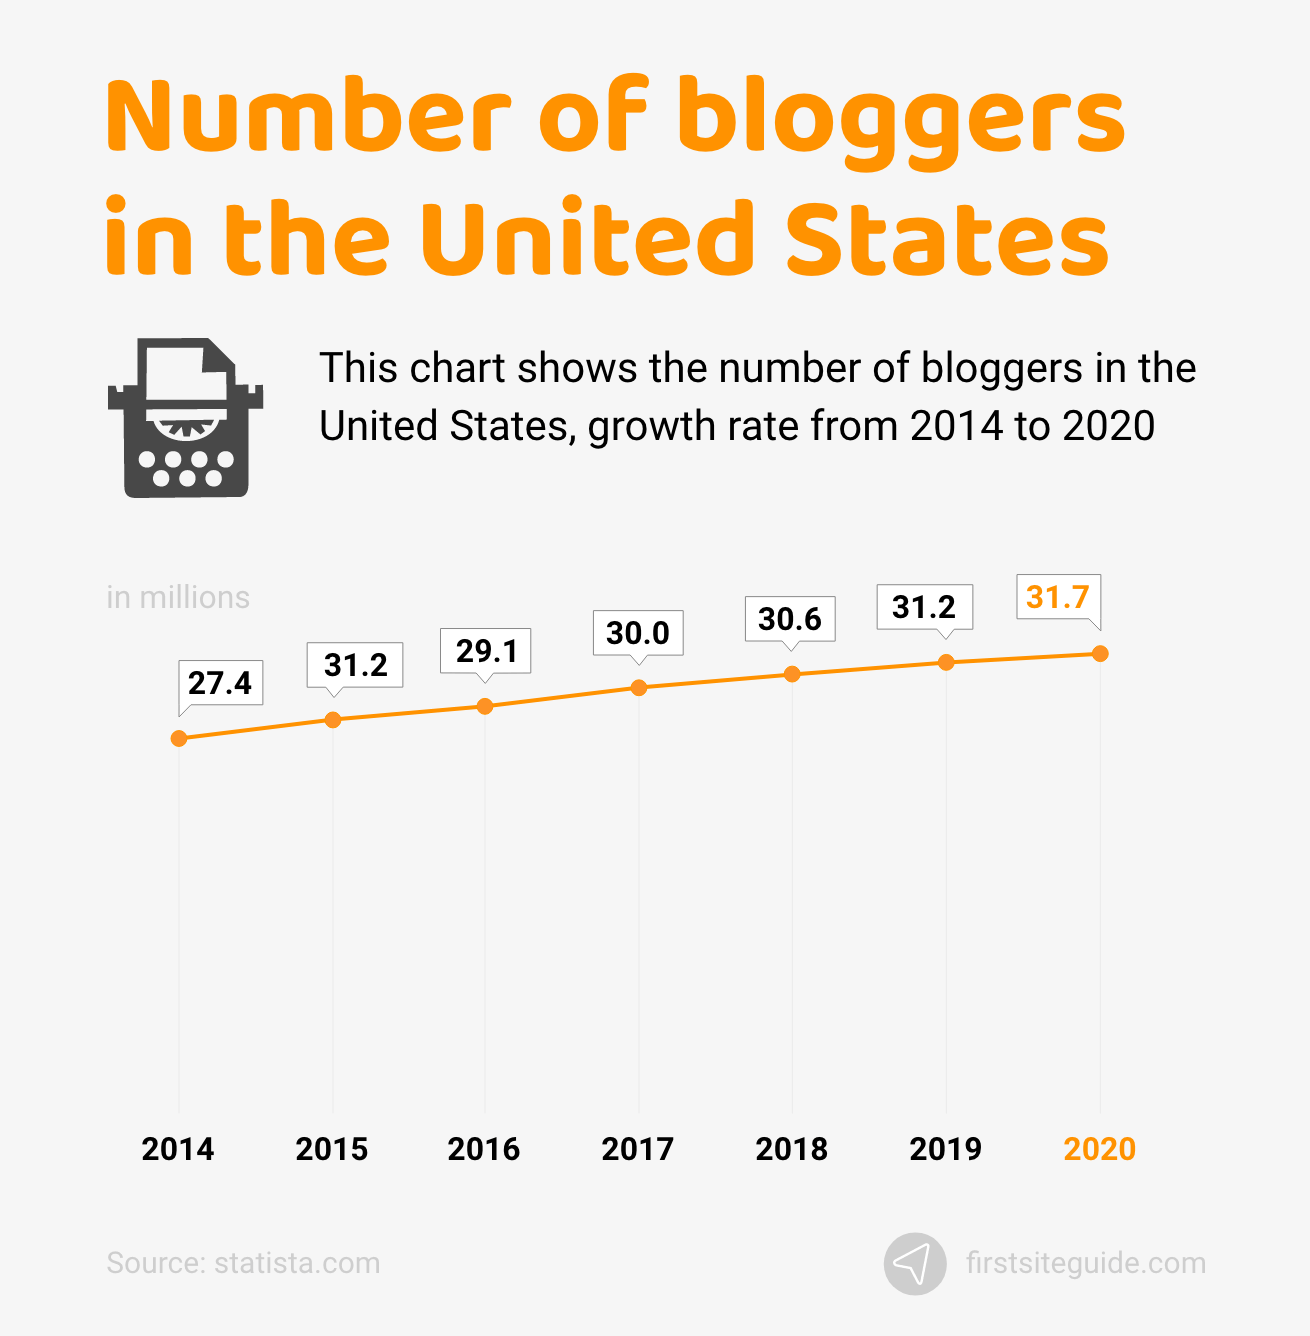 Number of bloggers in the US